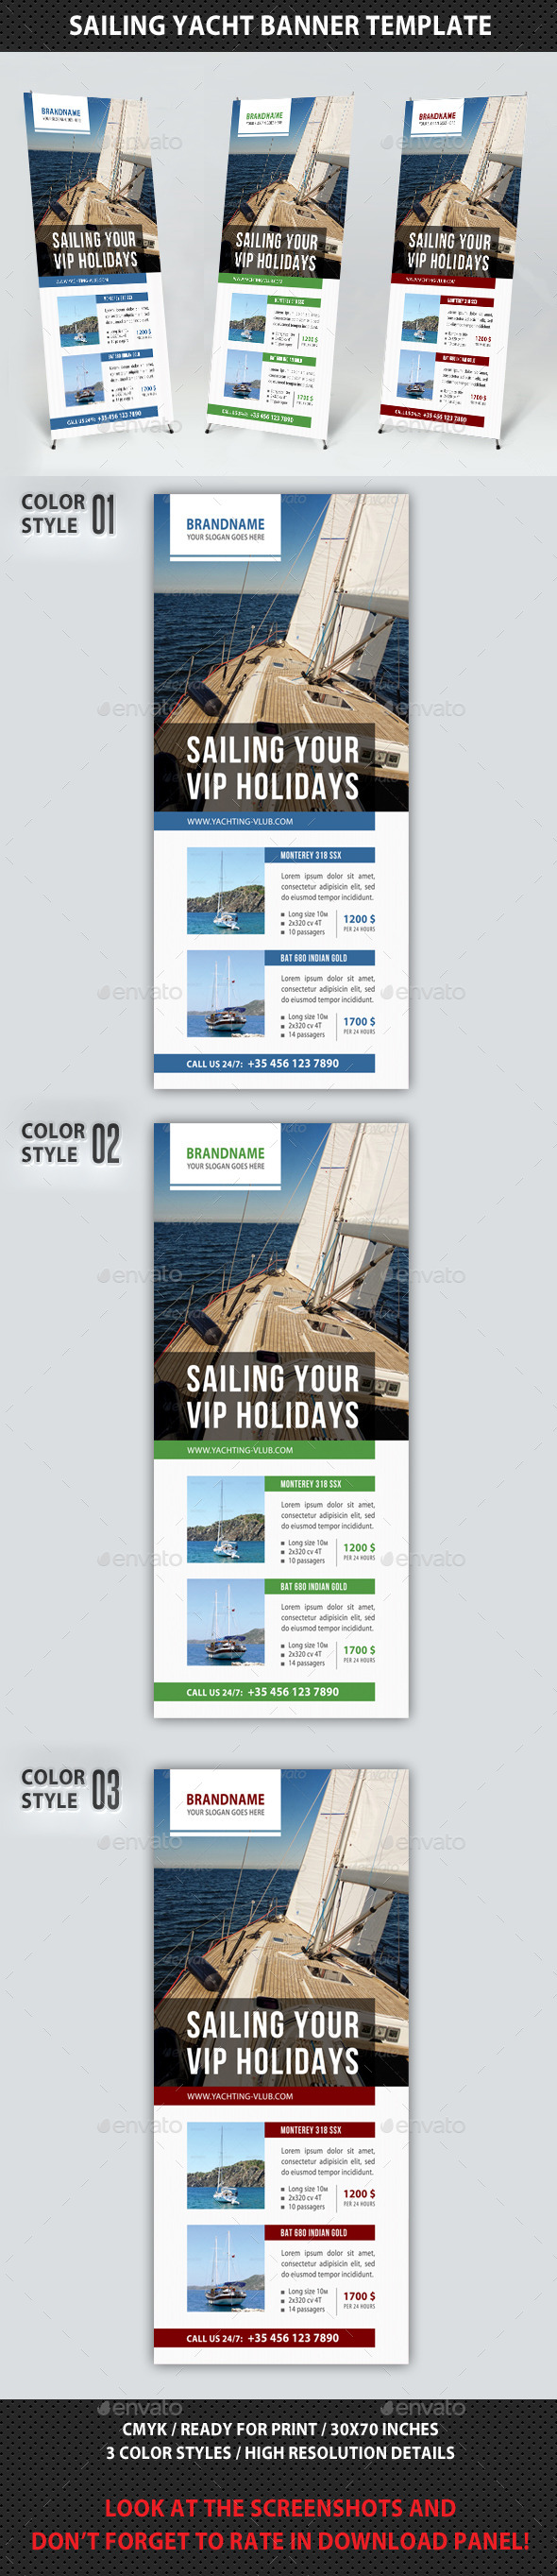 GraphicRiver Sailing Yacht Banner Template 02 8896222